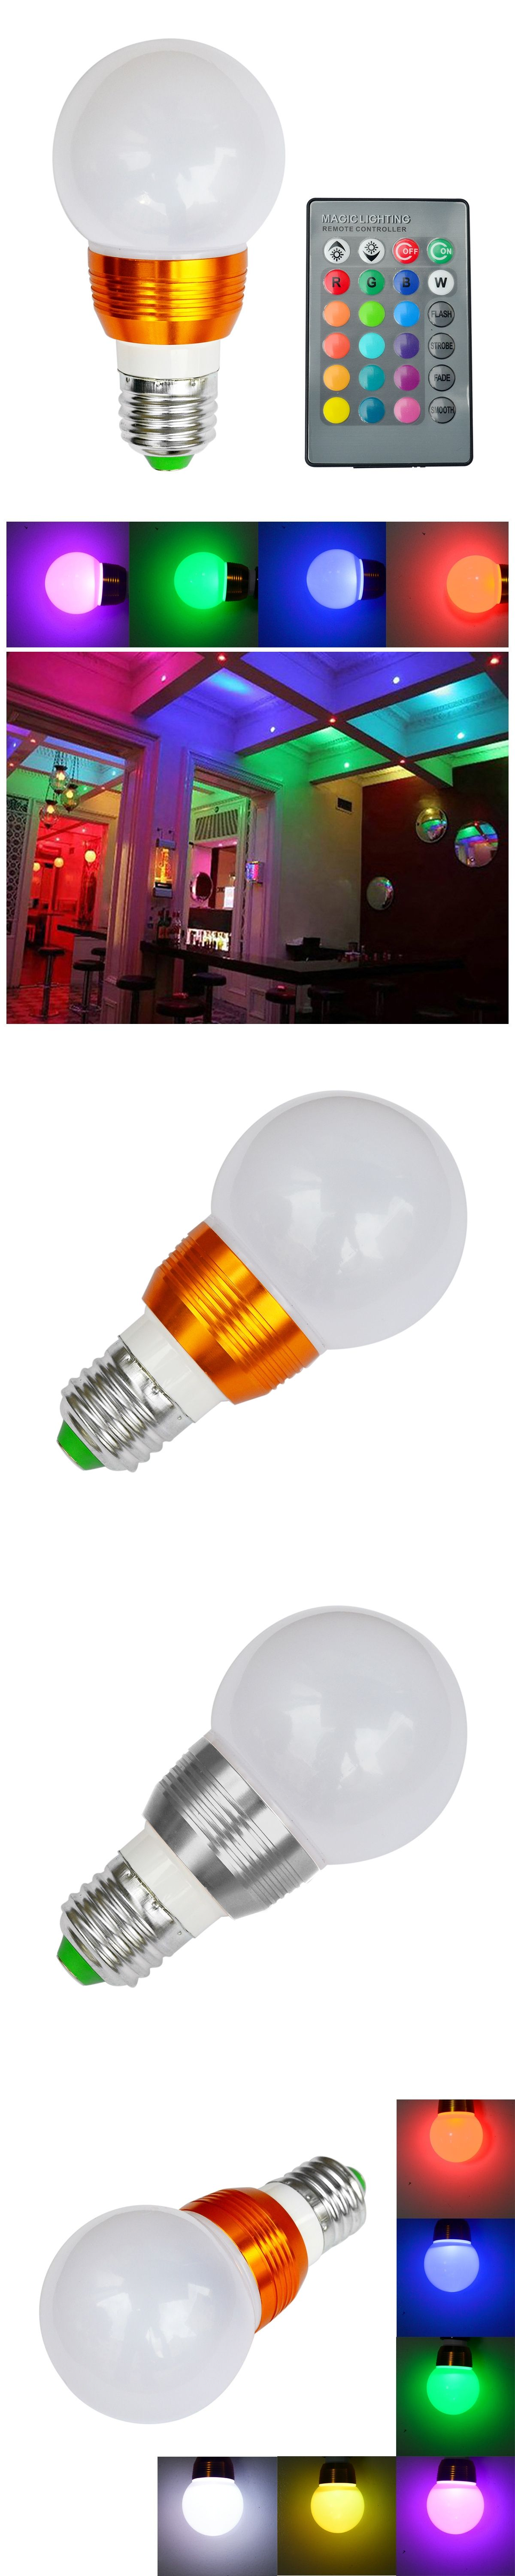 Jiawen 3W E27 RGB LED Bulb 16 Color Change Lamp spotlight 85-265V ...